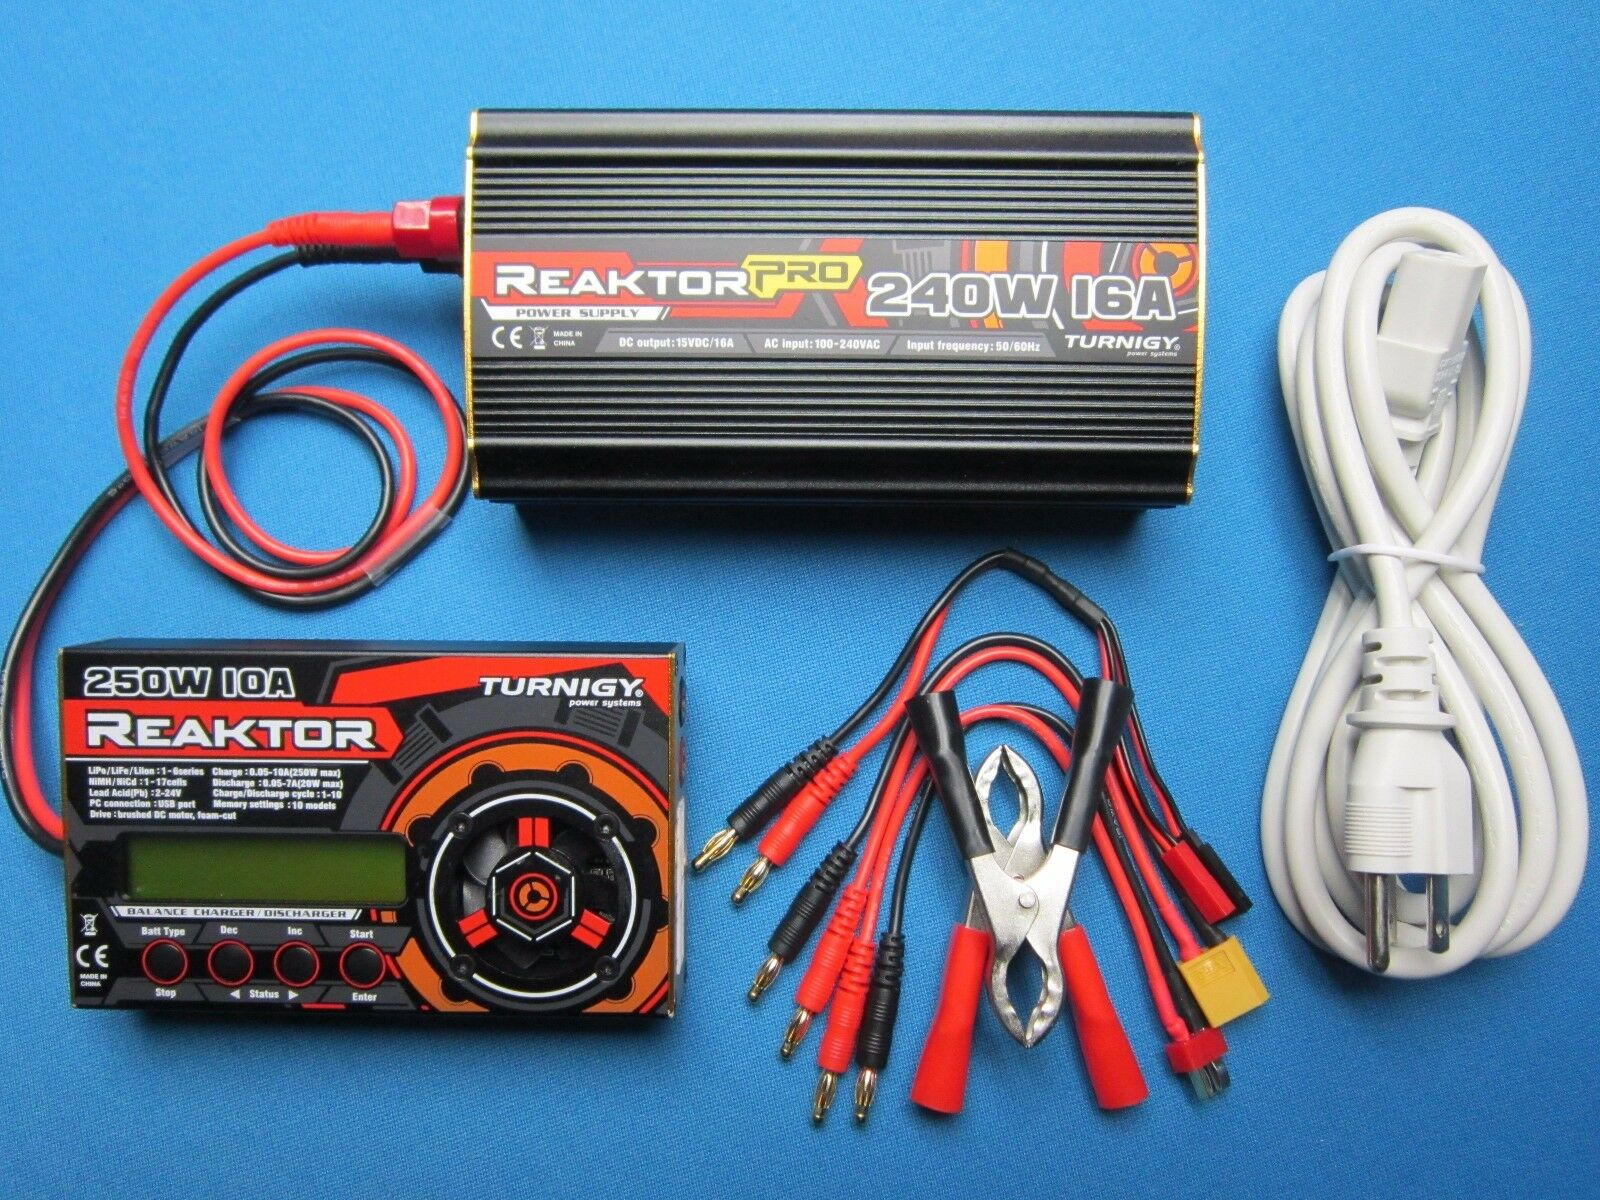 TURNIGY REAKTOR AC DC BALANCE CHARGER & POWER SUPPLY COMBO 250W 10A 1-6S LIPO US